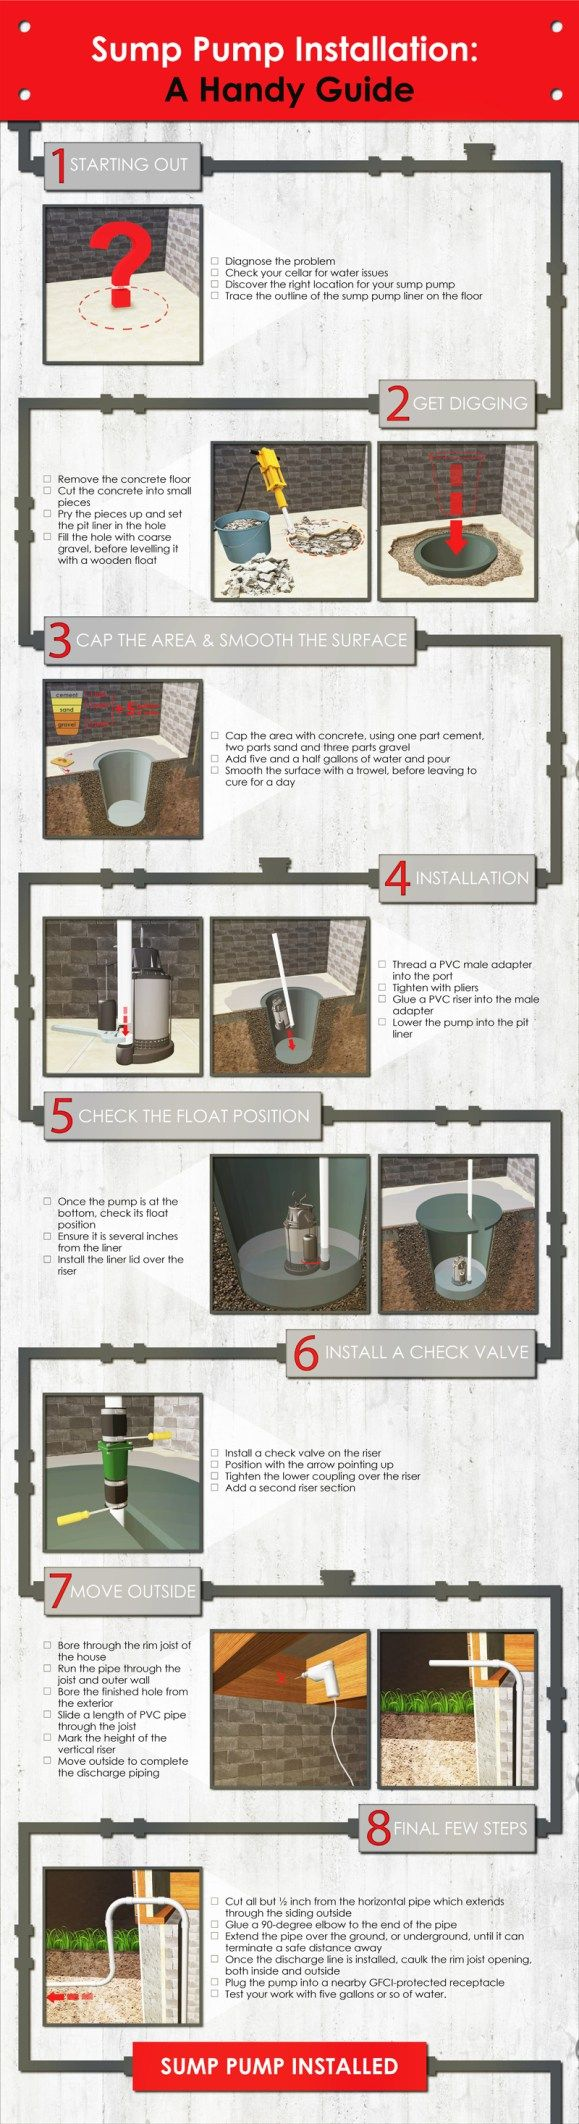 diagram of how to install a sump pit and pump